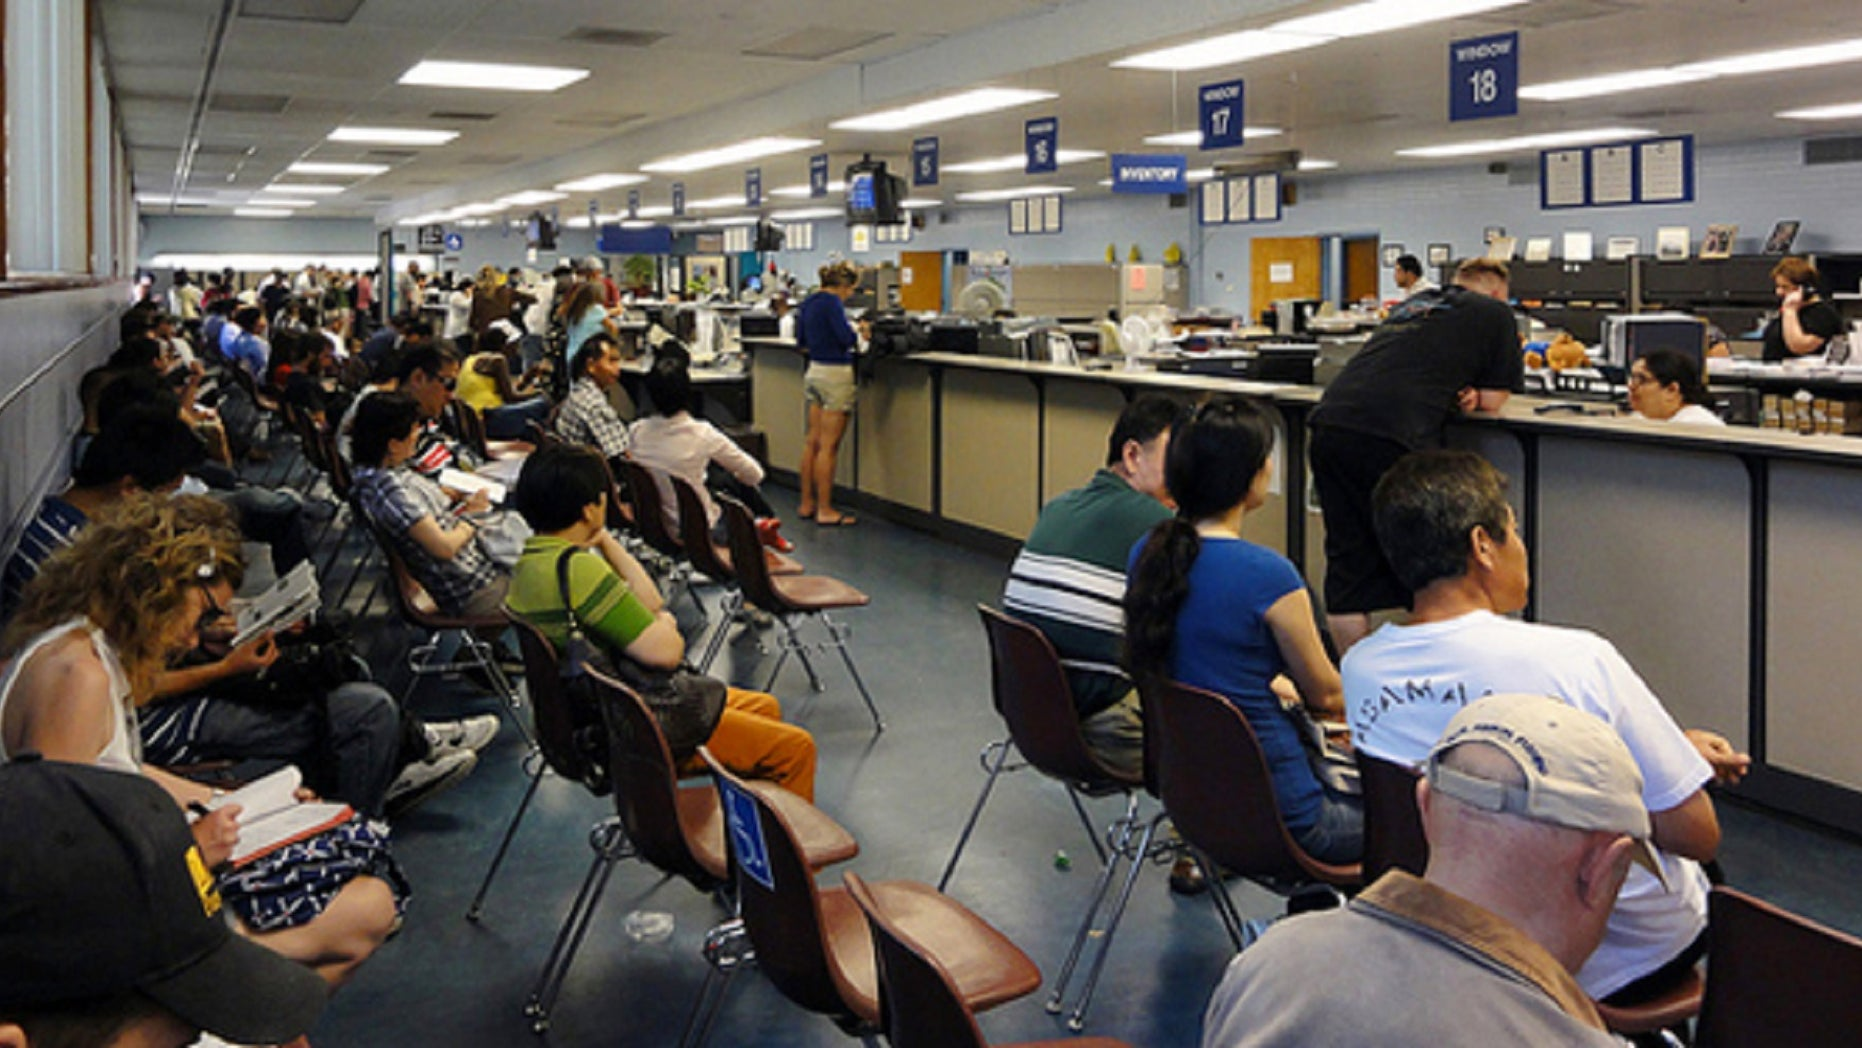 A California DMV worker reportedly slept for three hours a day on the job for nearly four years, a state audit found.